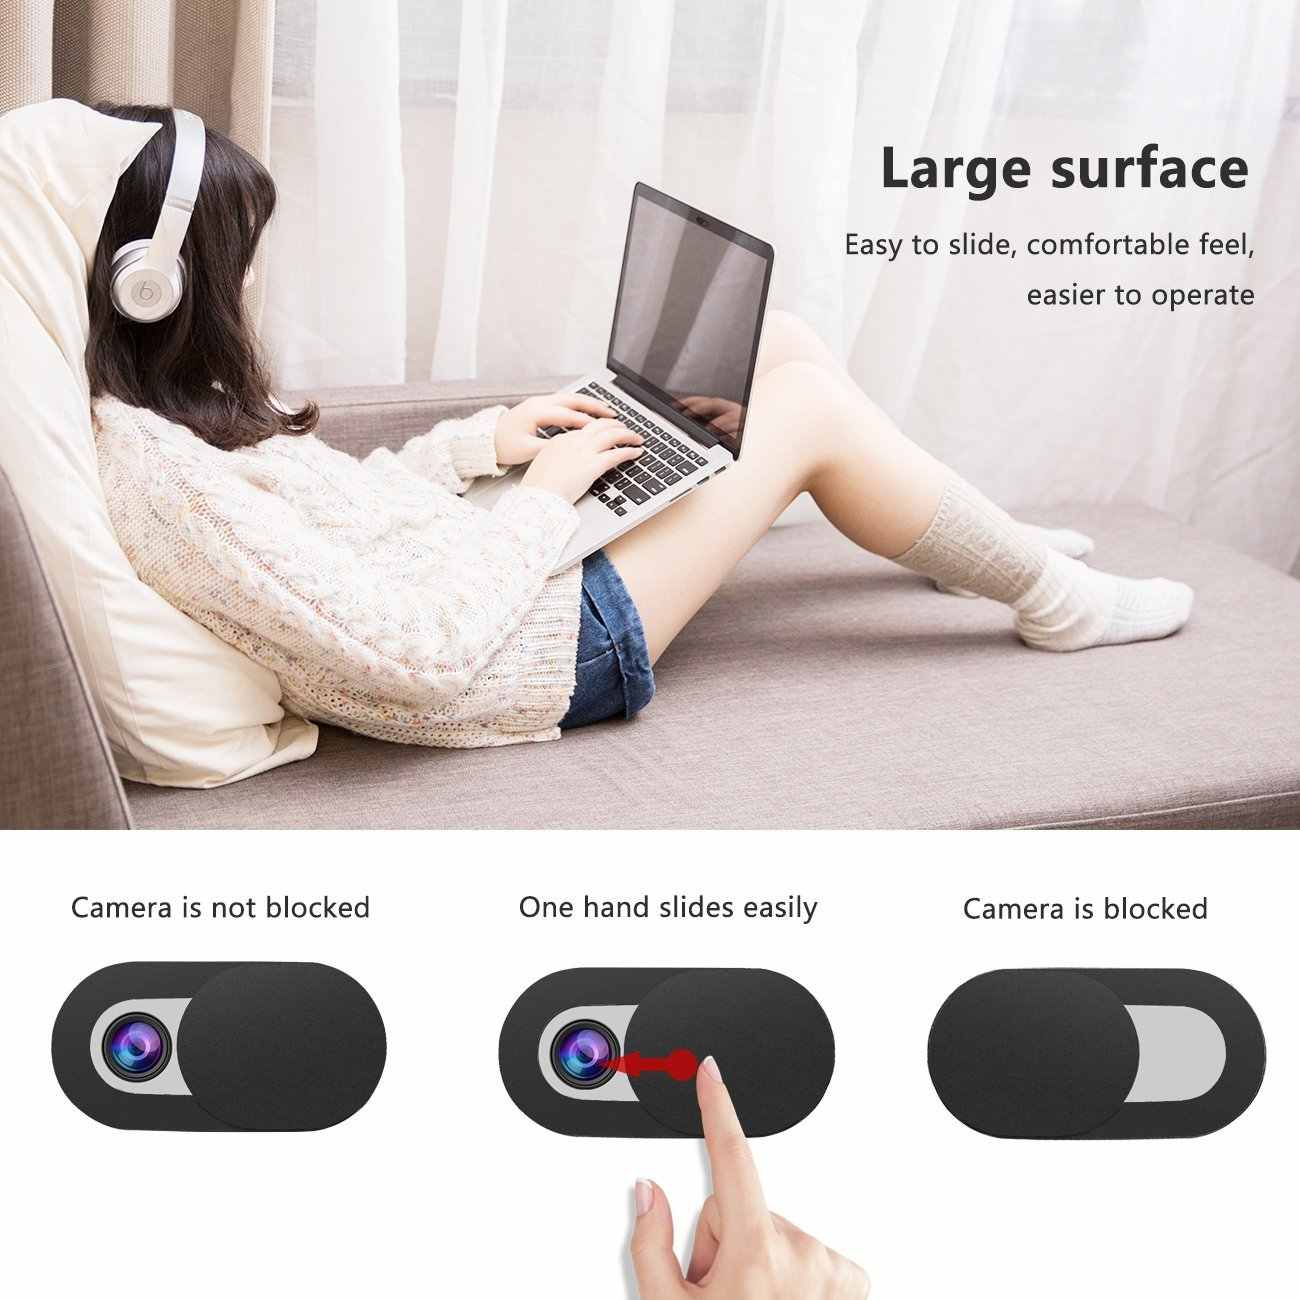 hot sale online 24adc 0a31c Detail Feedback Questions about WebCam Camera Cover For iPhone XS ...